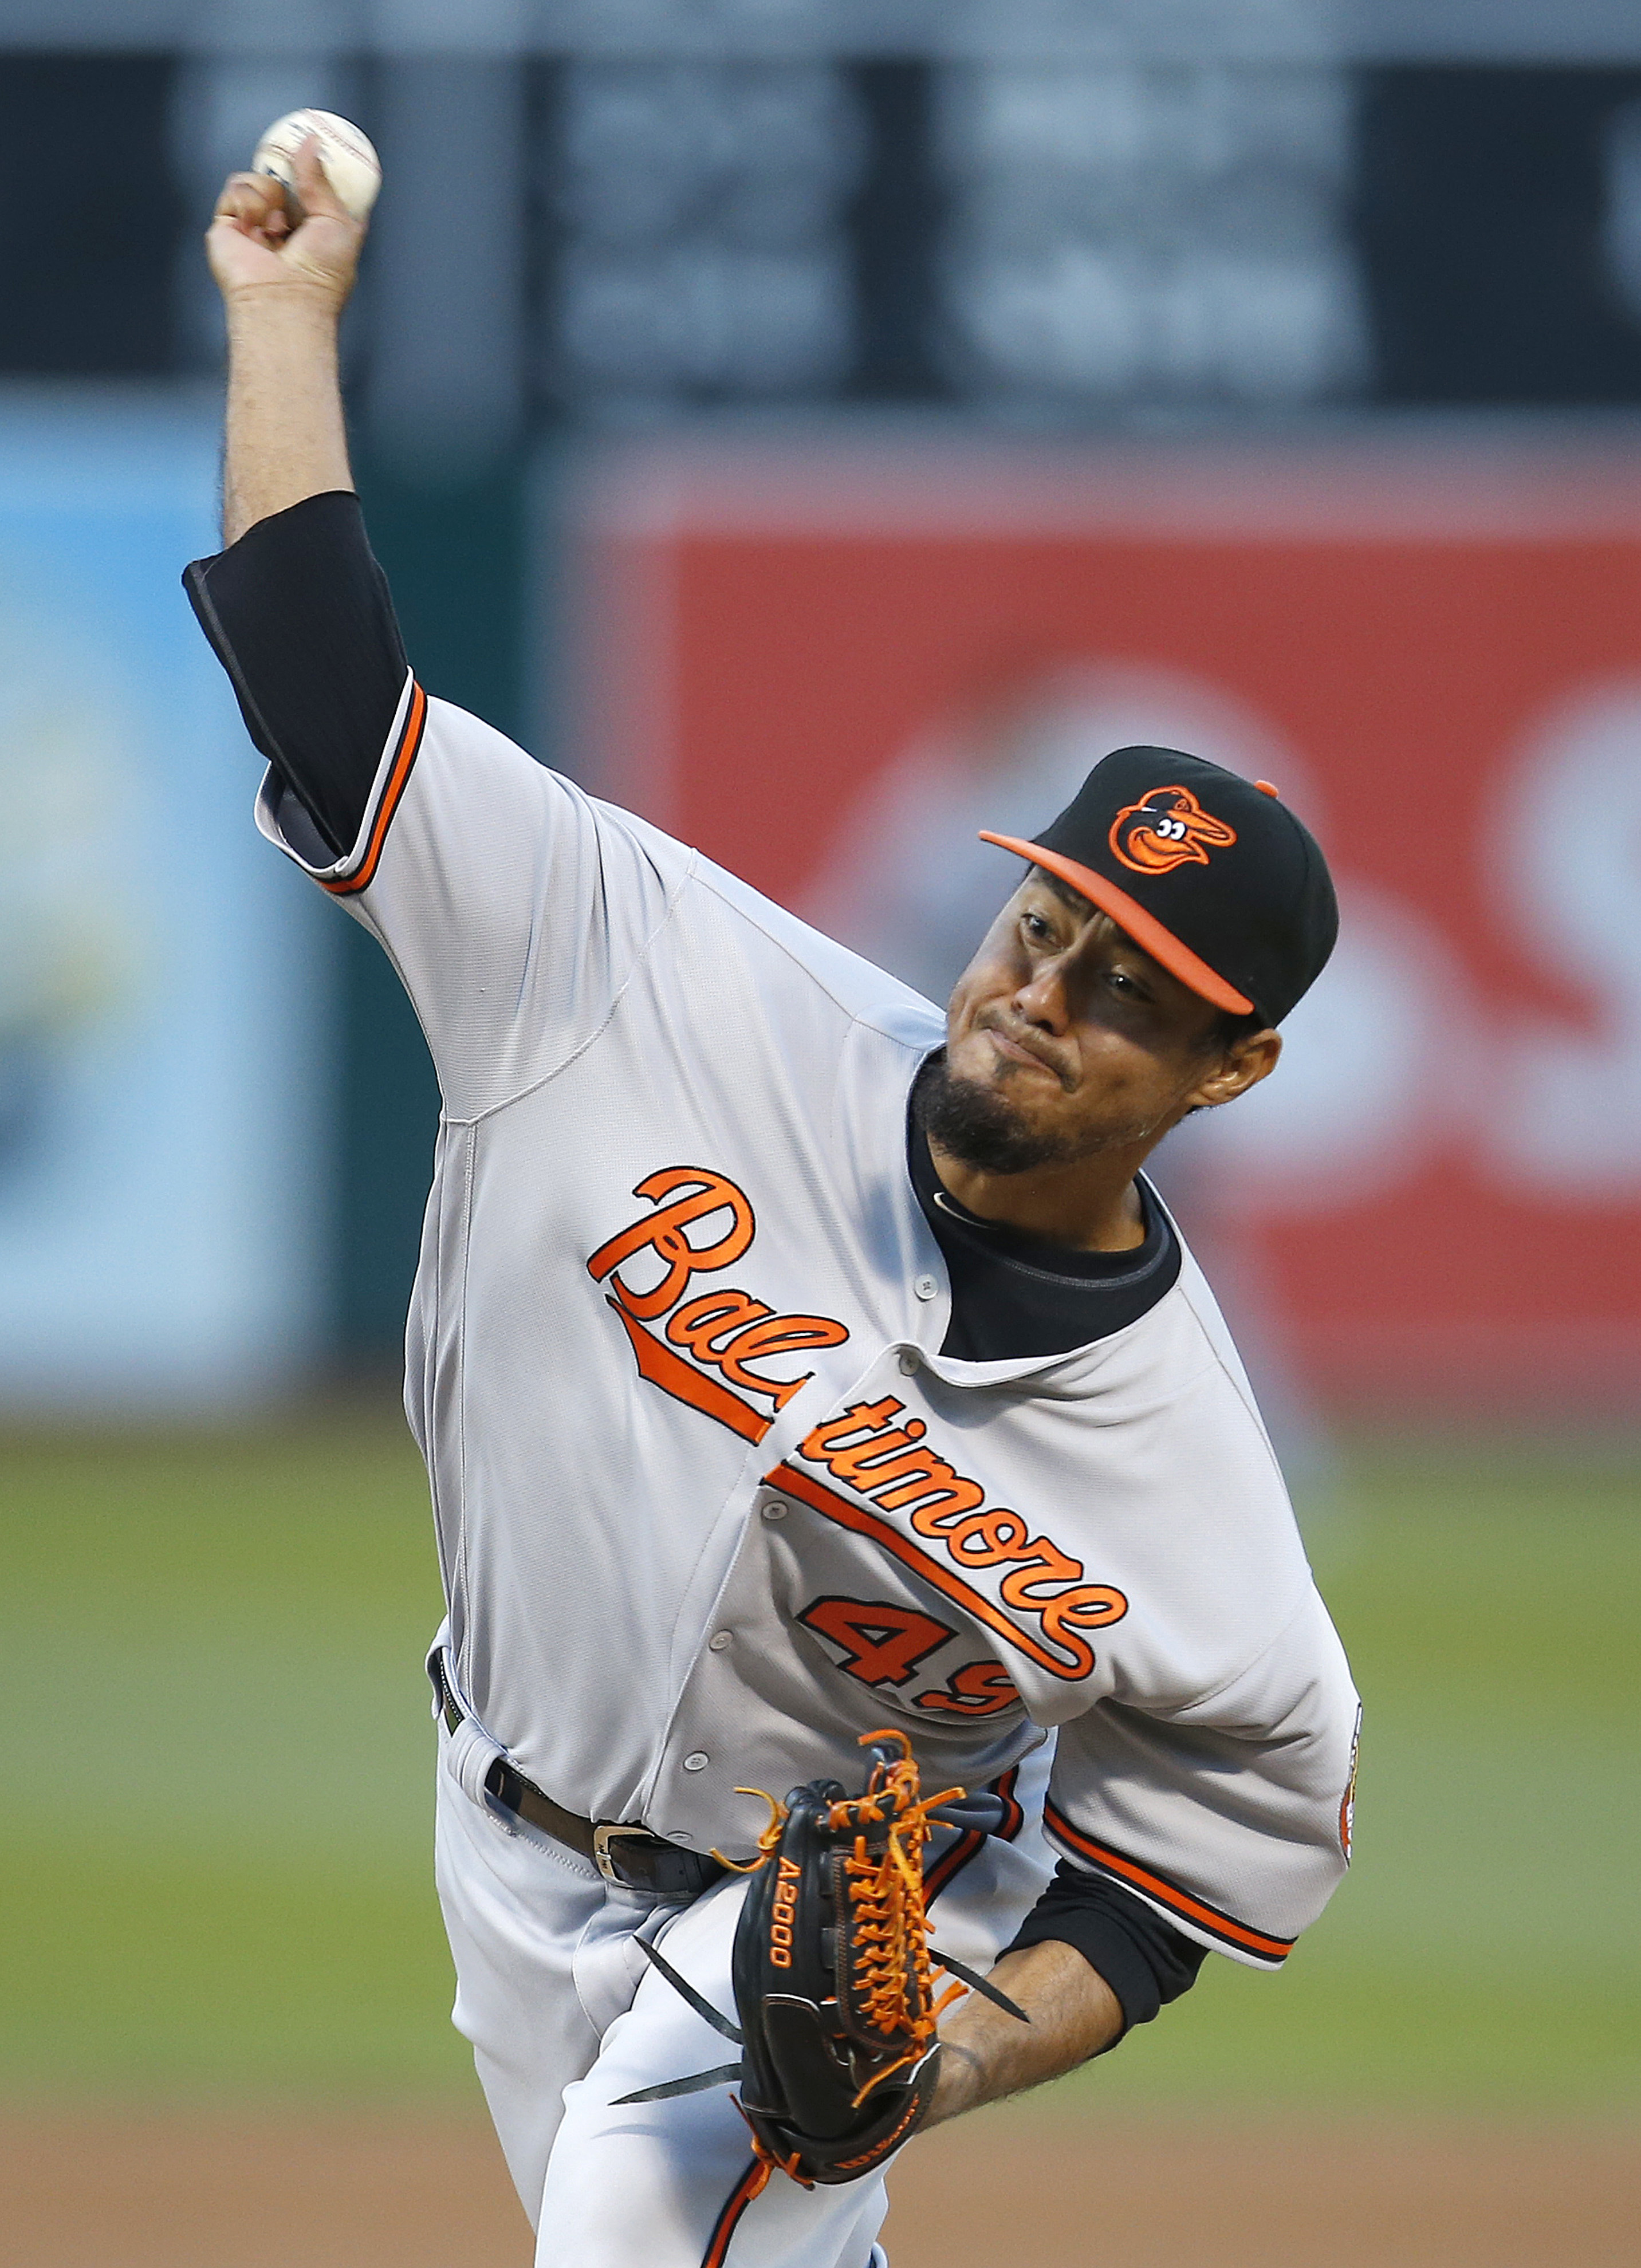 Baltimore Orioles pitcher Yovani Gallardo throws against the Oakland Athletics in the first inning of a baseball game Wednesday, Aug. 10, 2016 in Oakland, Calif. (AP Photo/Tony Avelar)